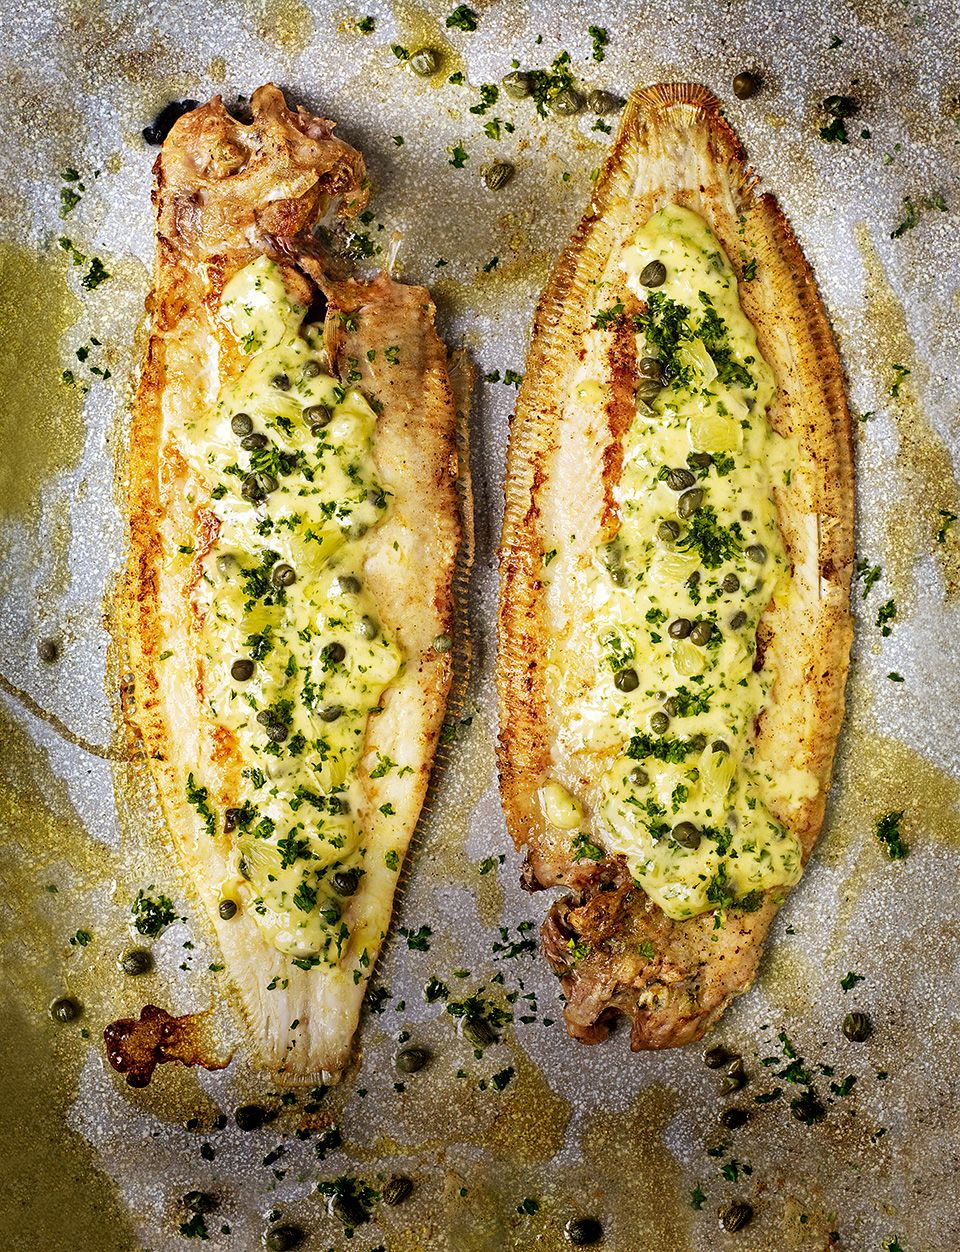 pan fried dover sole with caper lemon and parsley butter sauce